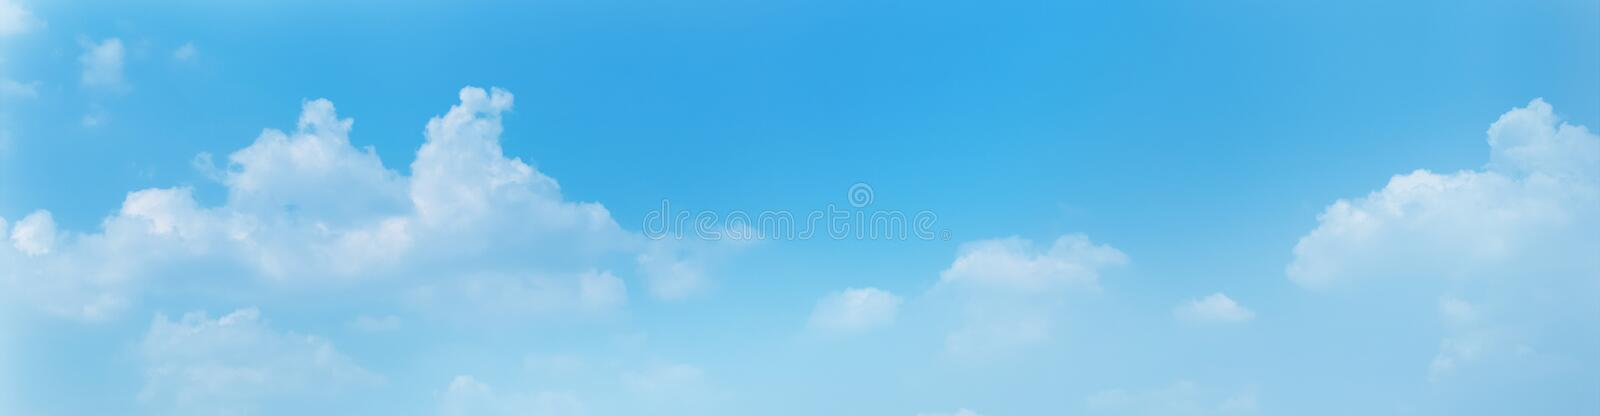 Panorama blue sky background with clouds in the morning.  stock images